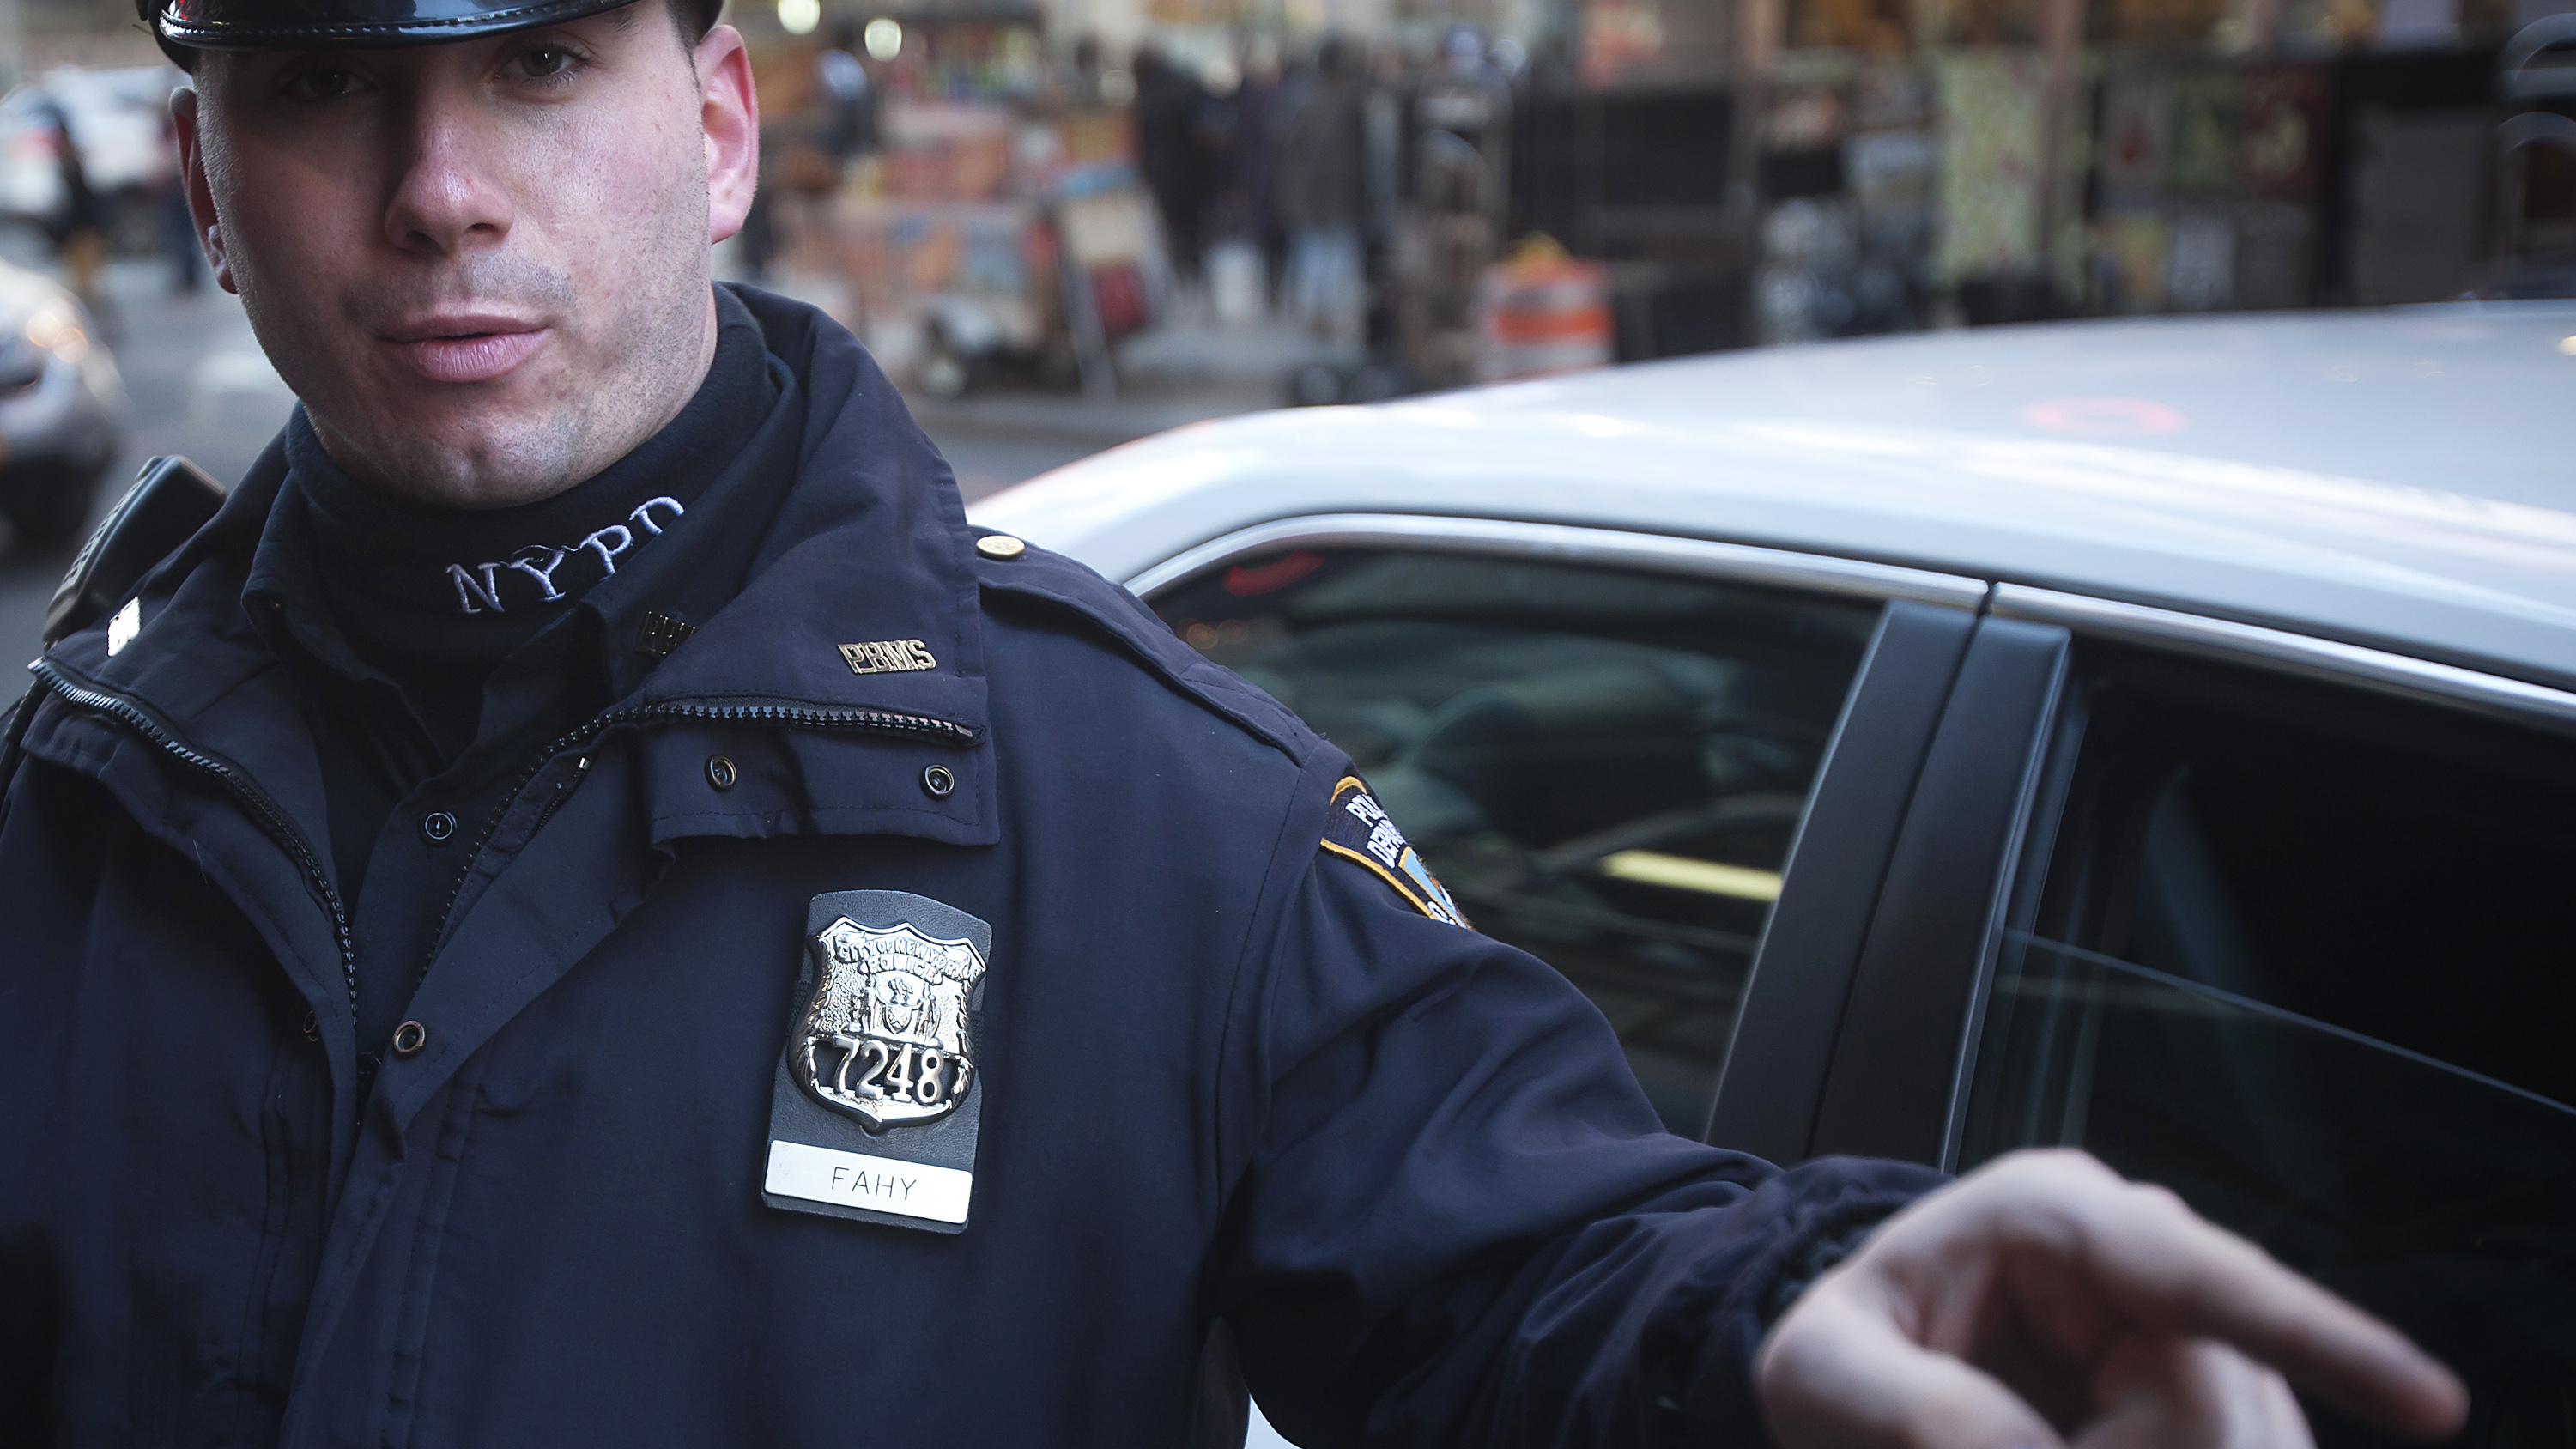 Police officer issues traffic ticket